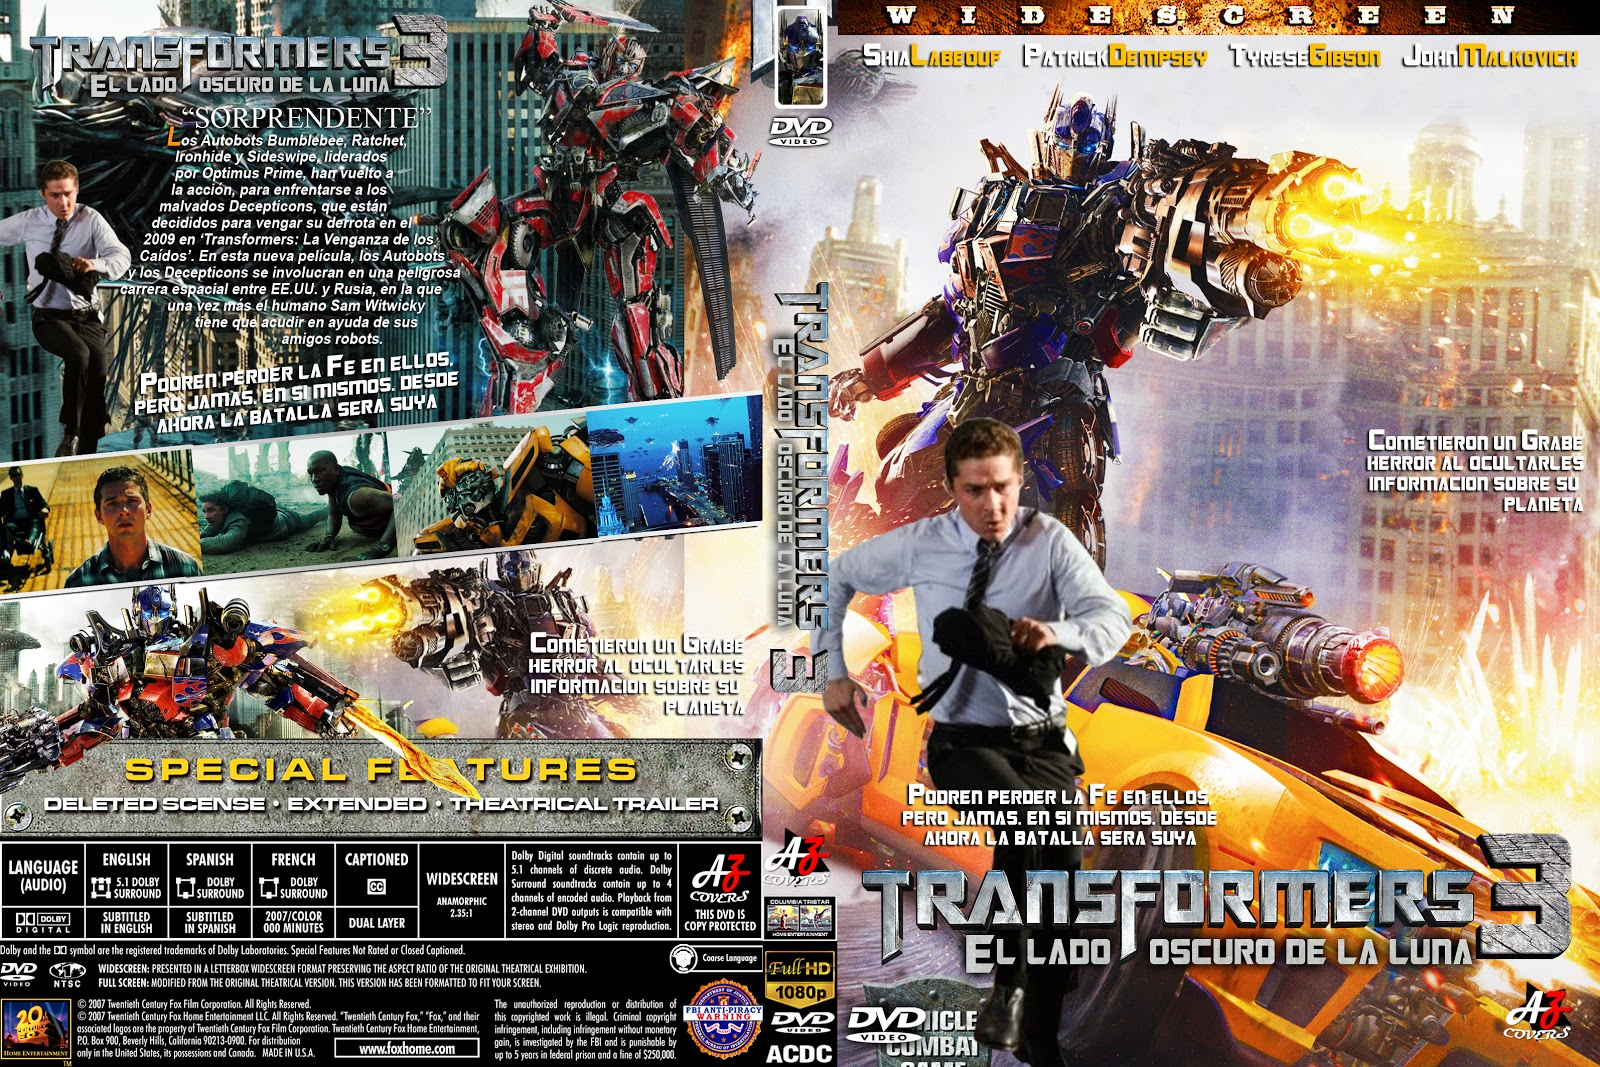 Transformers dvd - Actual Coupons